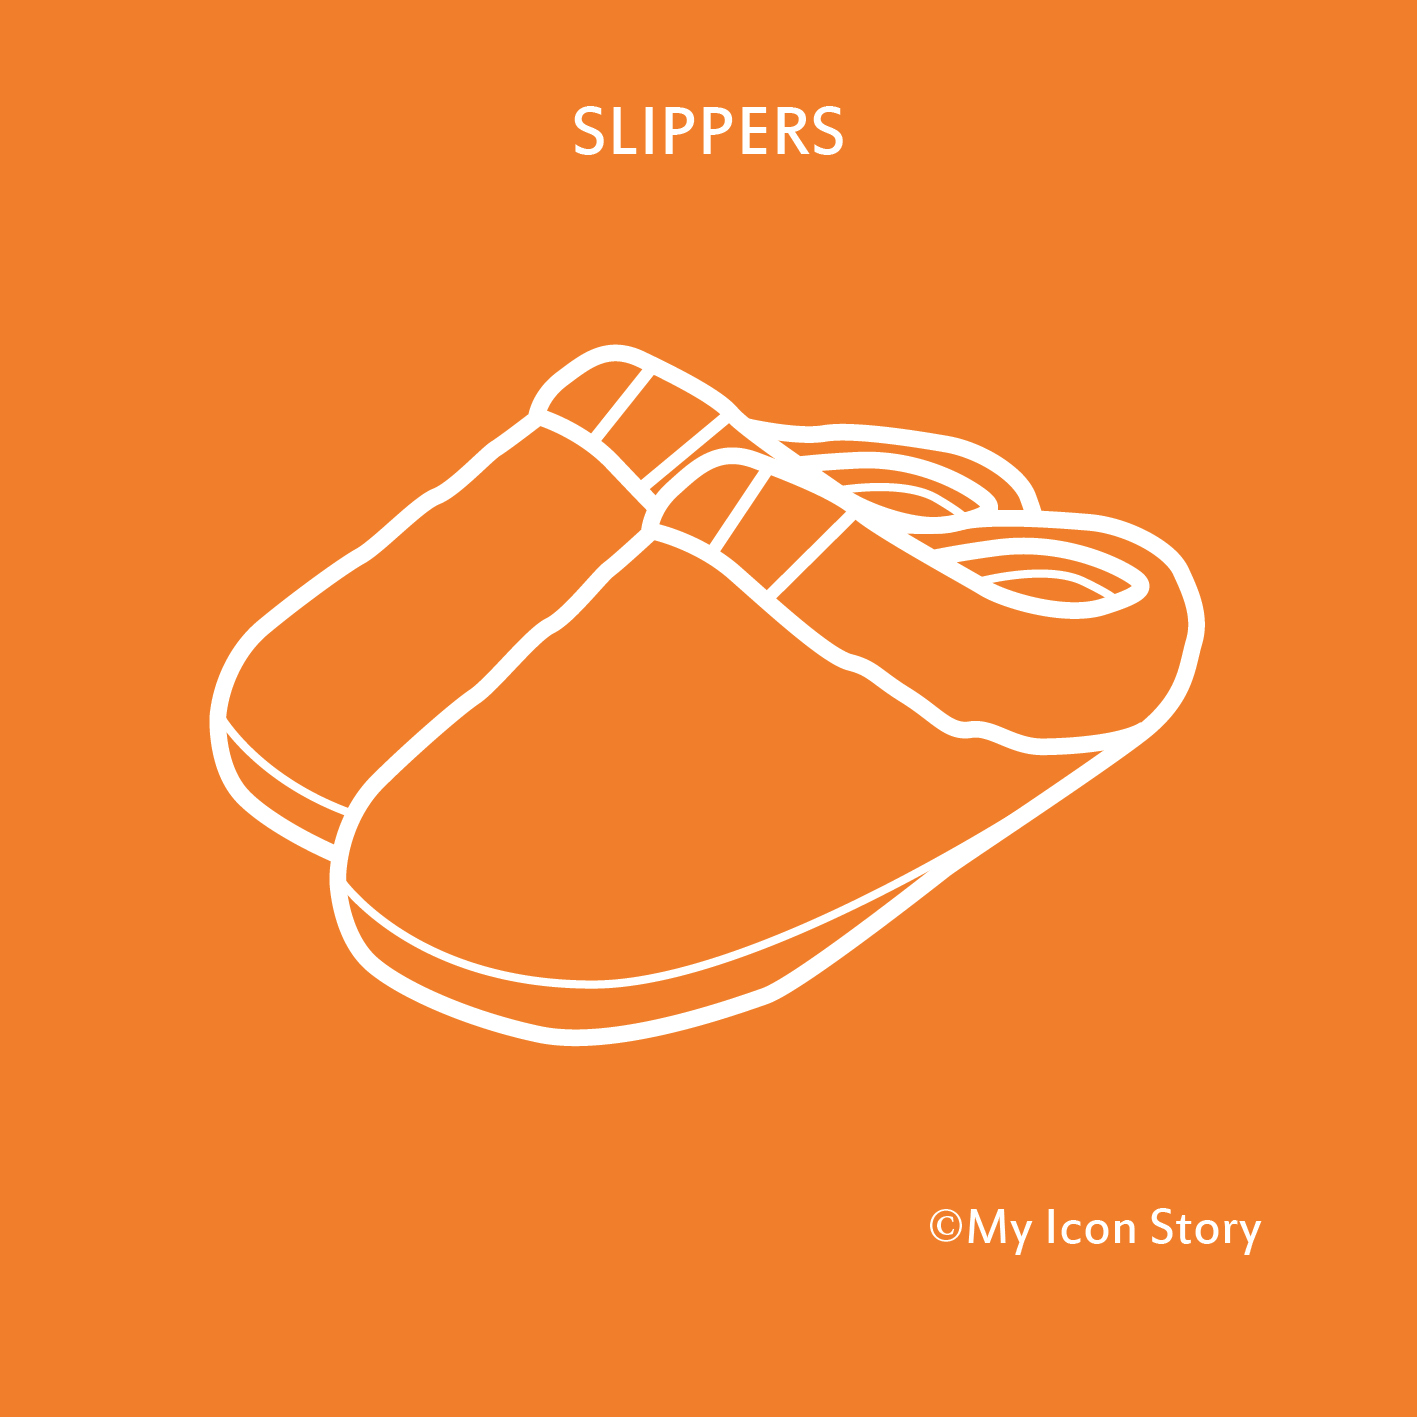 Pair of slippers icon